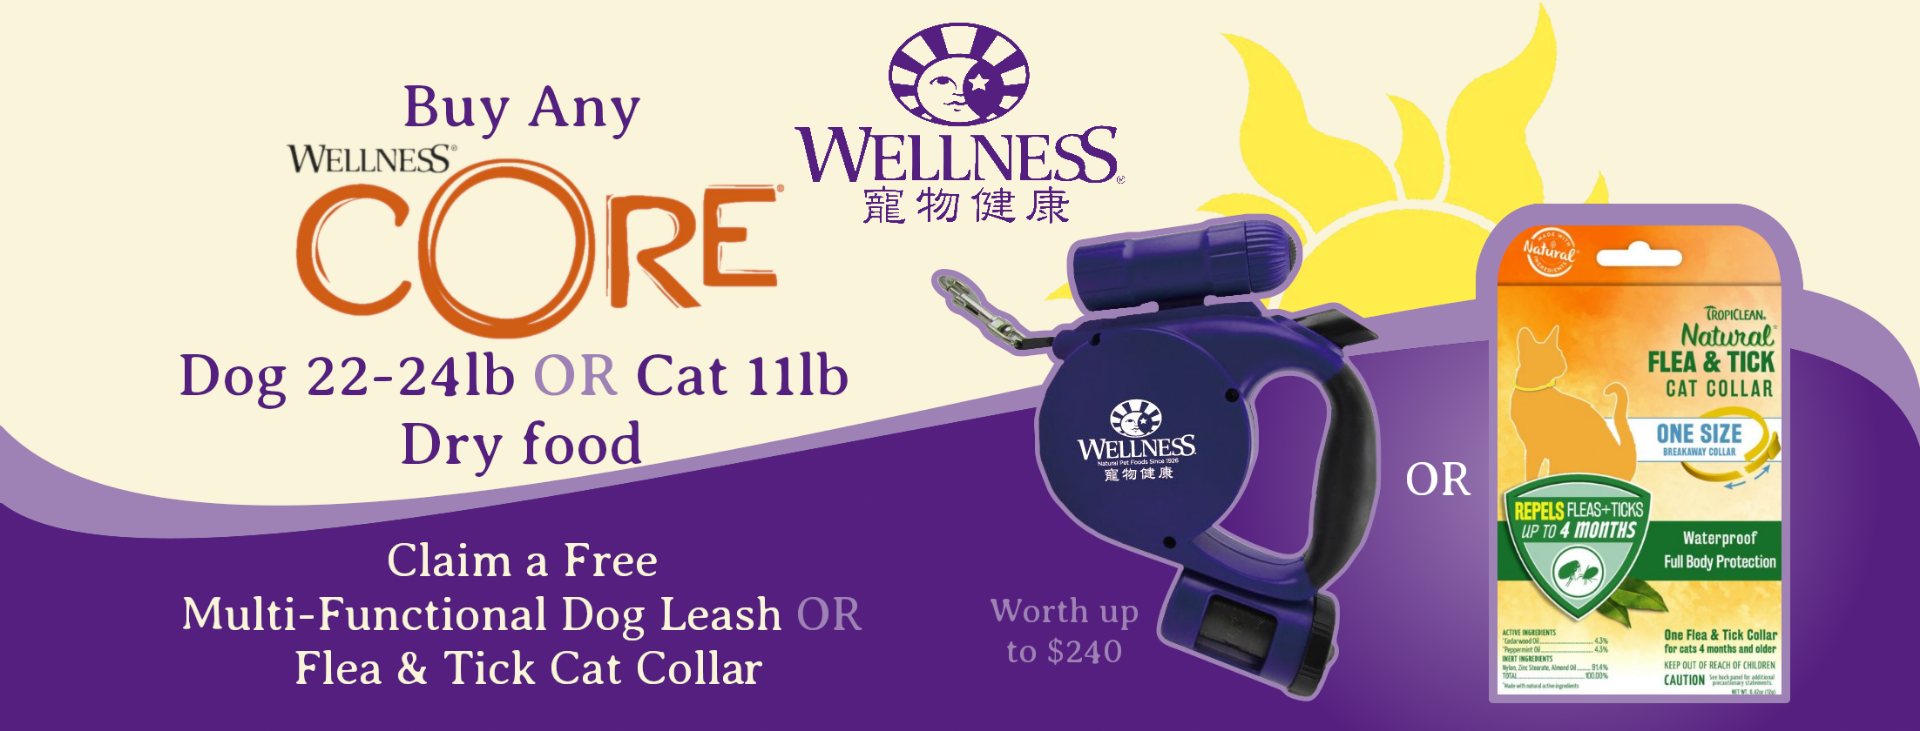 Buy a Large Bag of Wellness Core Dry Food & Choose a Free Gift